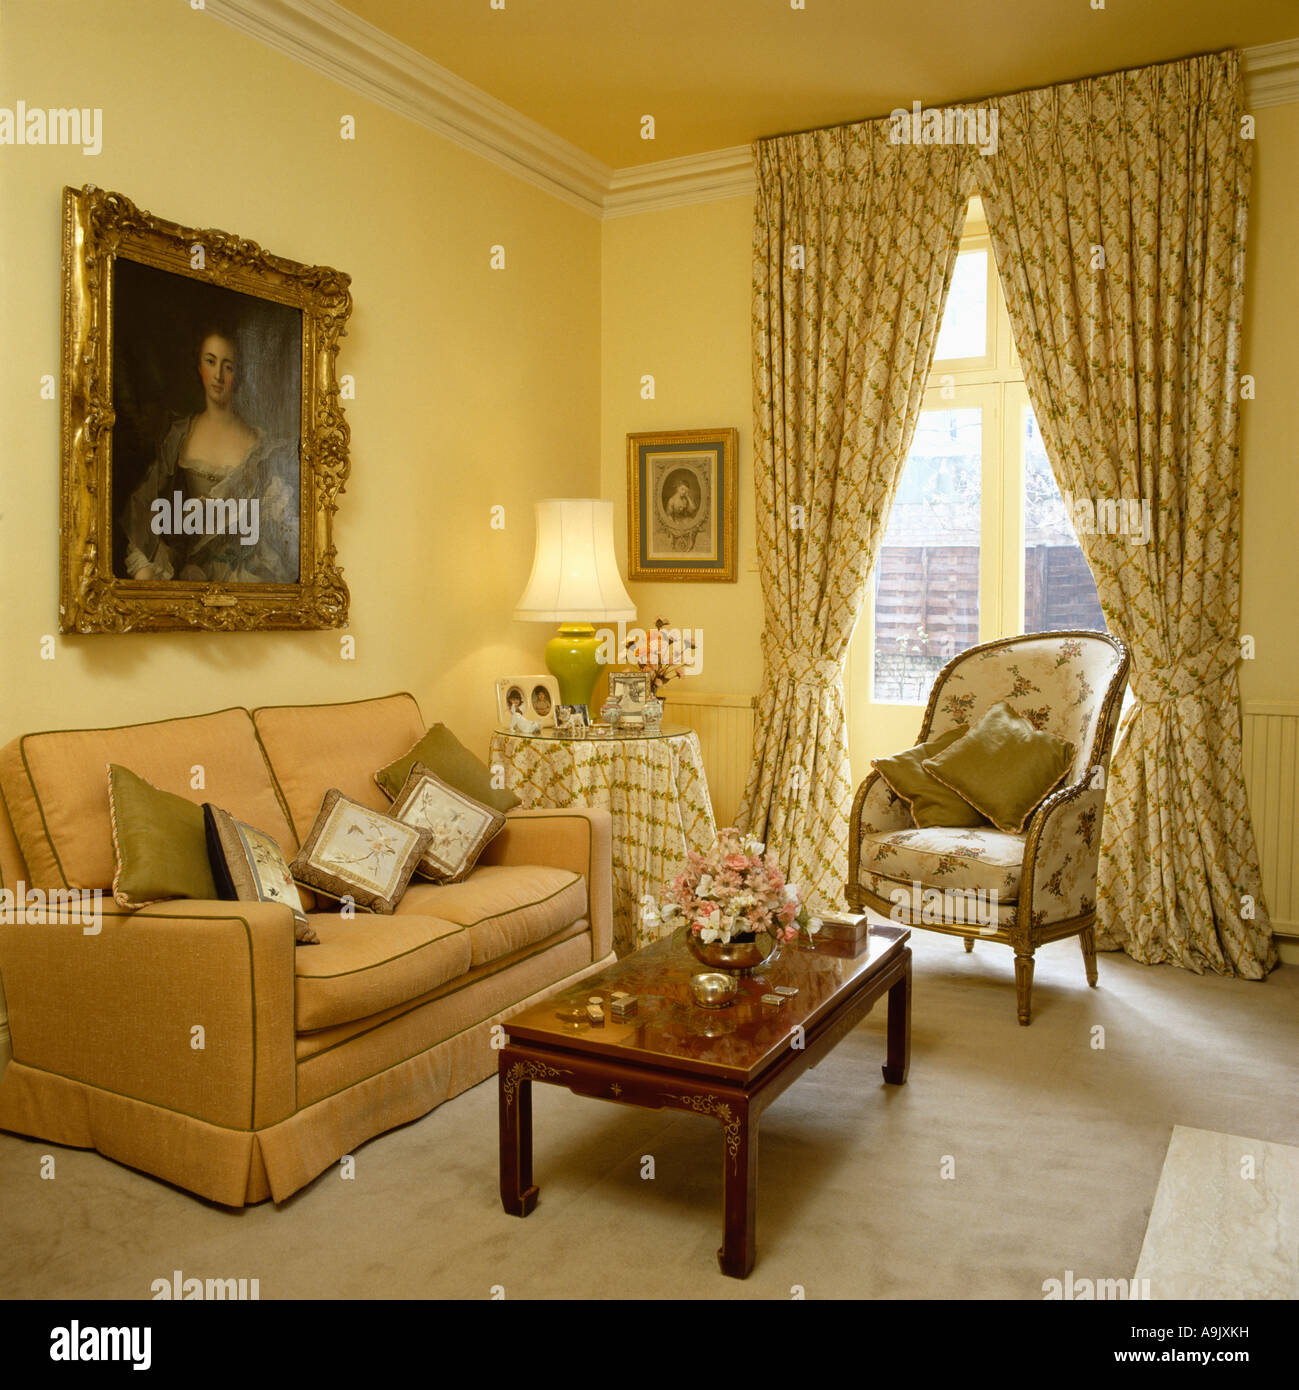 Large Portrait Above Peach Sofa In Pale Yellow Livingroom With Stock Photo Royalty Free Image